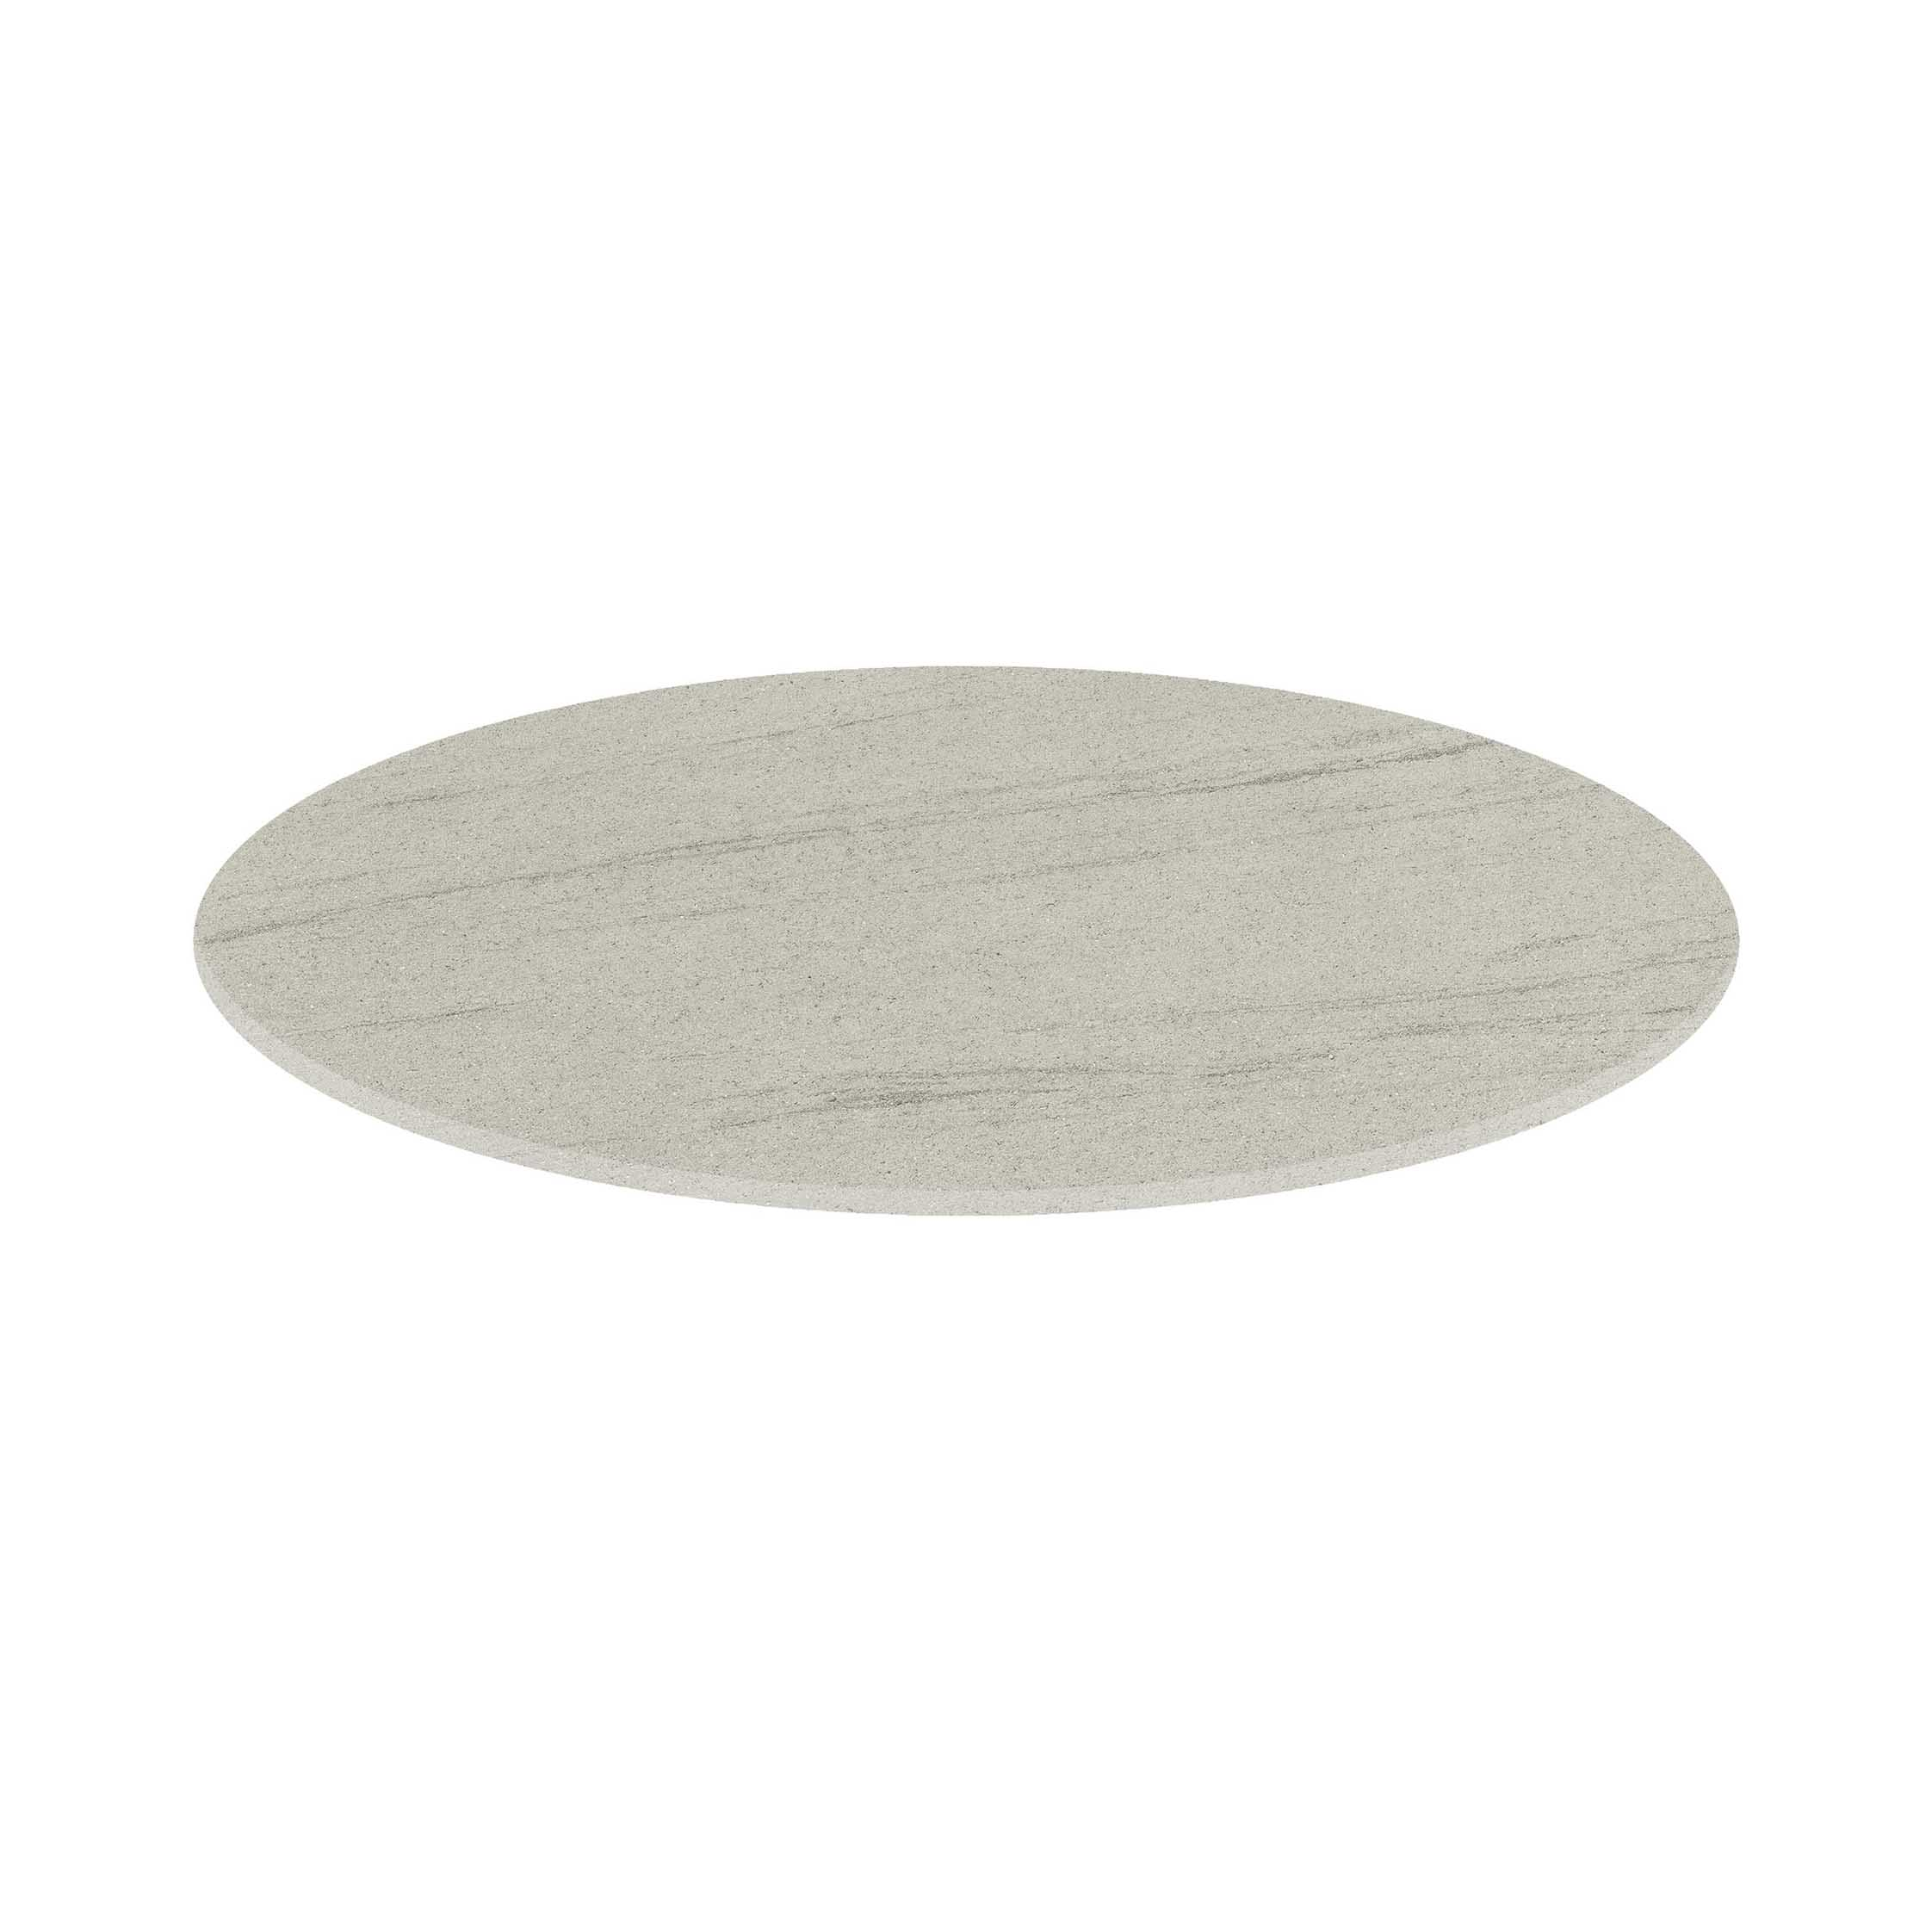 Round table top 70cm - Grey